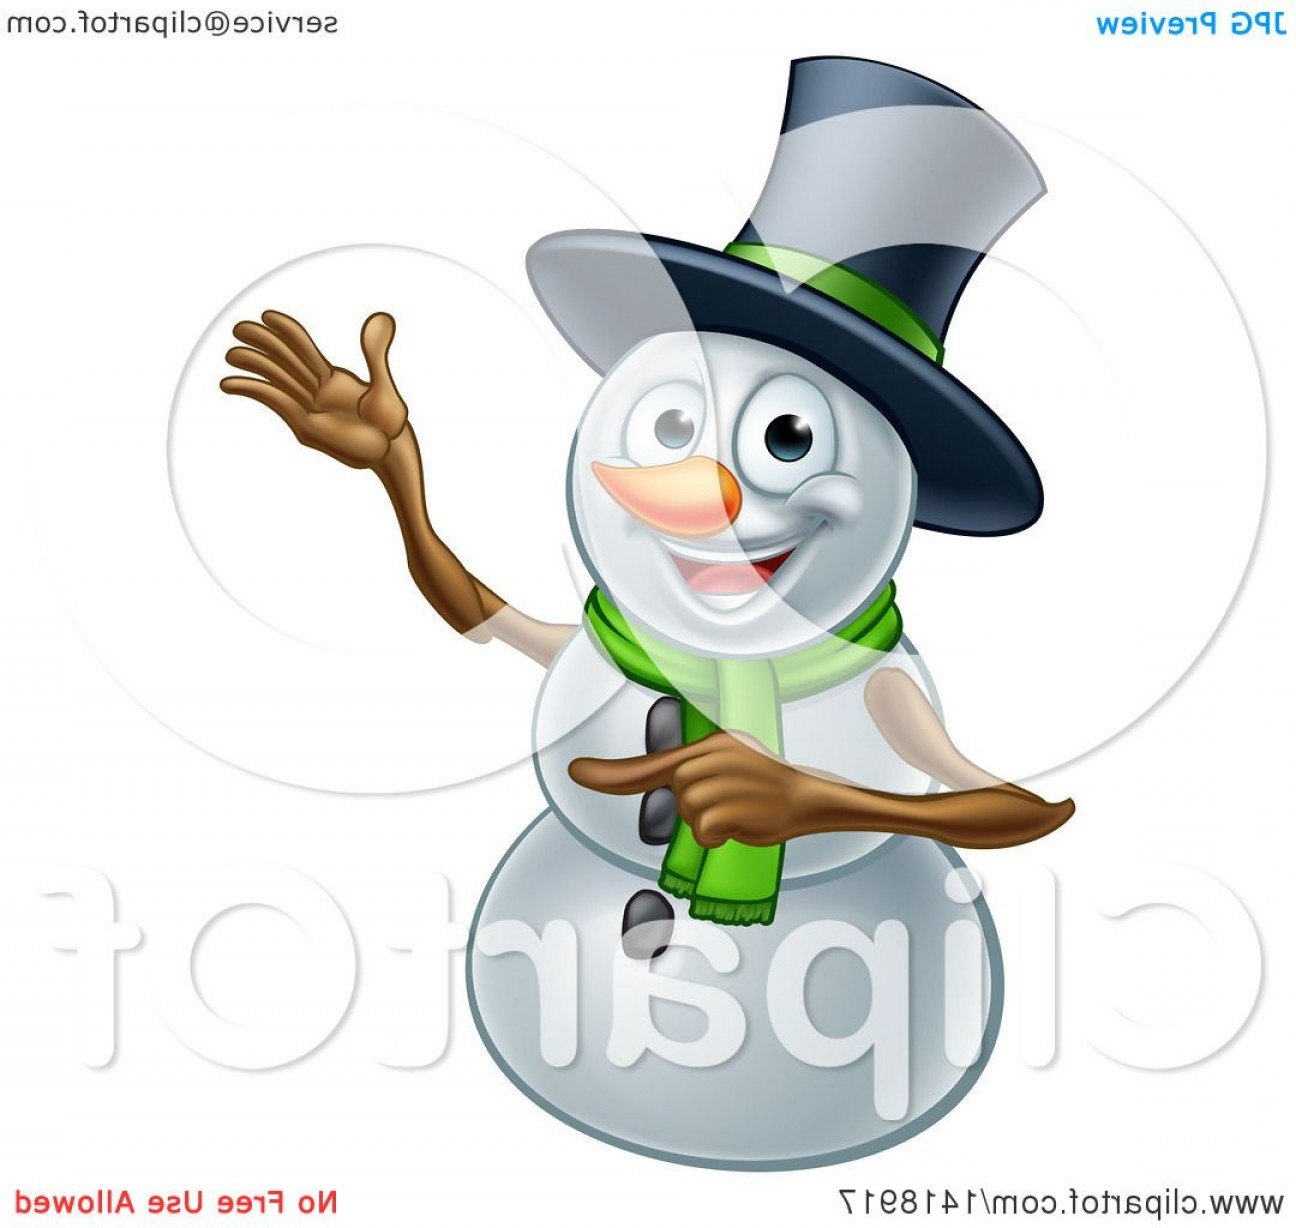 No Hat With Snowman Vector: Presenting Christmas Snowman Wearing A Green Scarf And A Top Hat